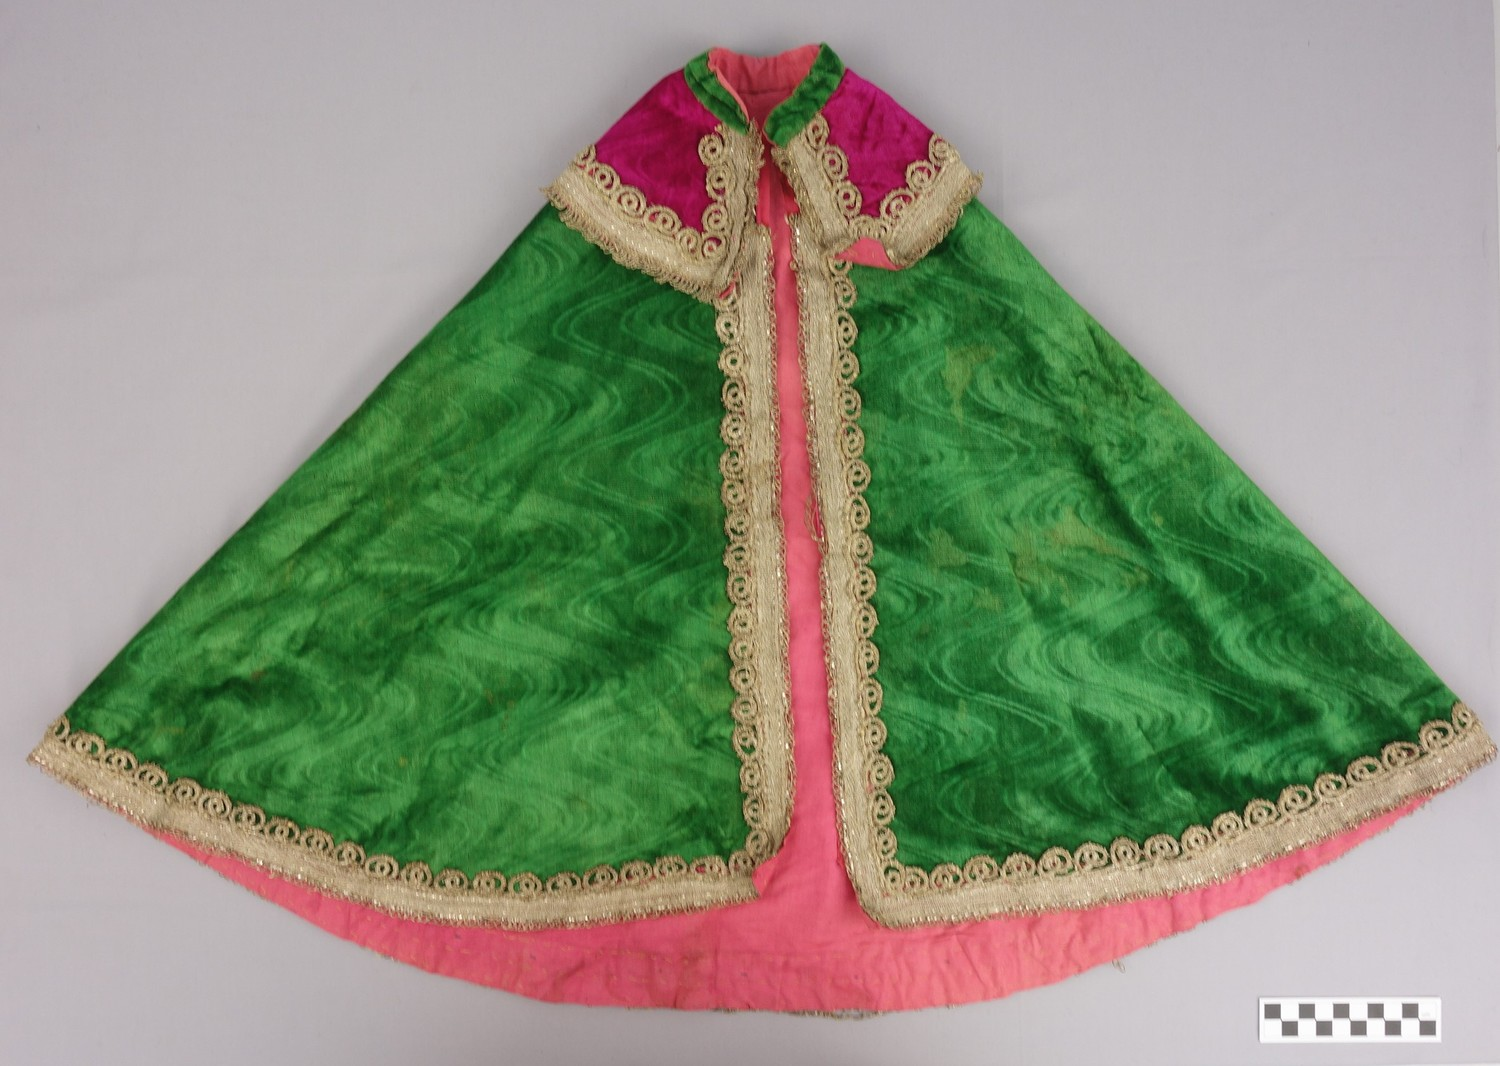 Child's cape made from European pressed velvet, worn in Iran, early 20th century (TRC 1998.0404).